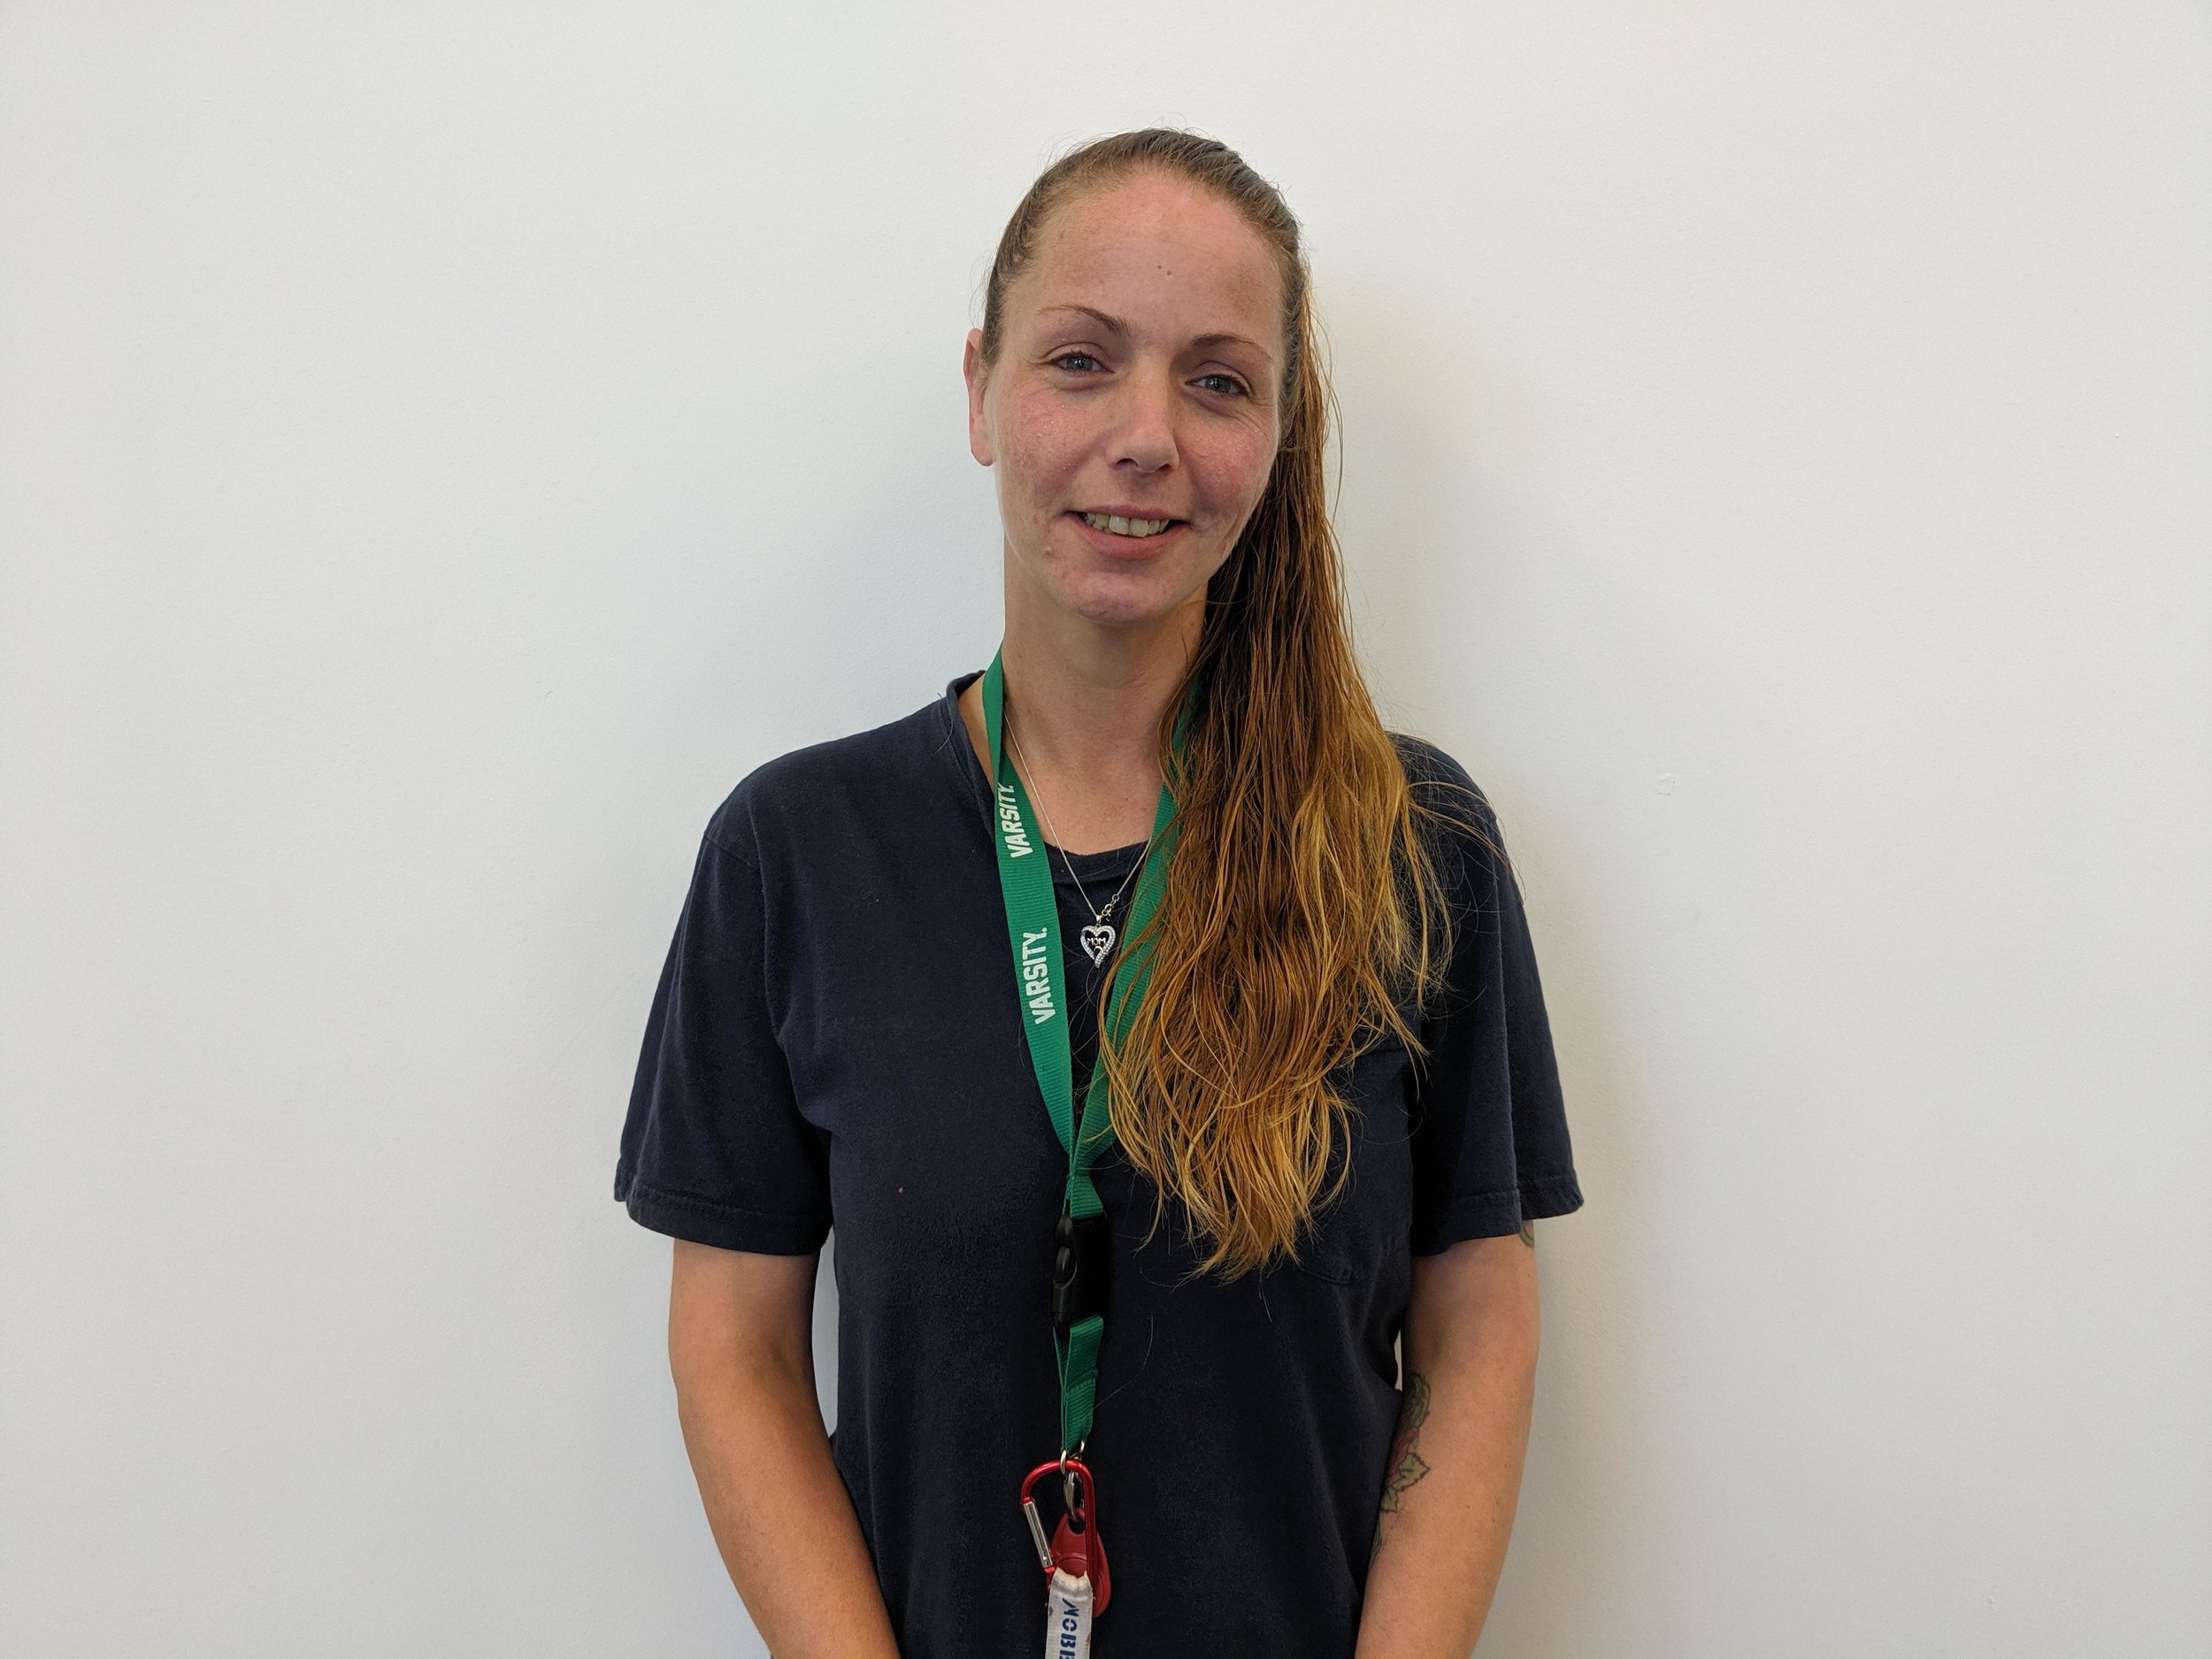 Carol-Anne Groves - Cleaning Technician